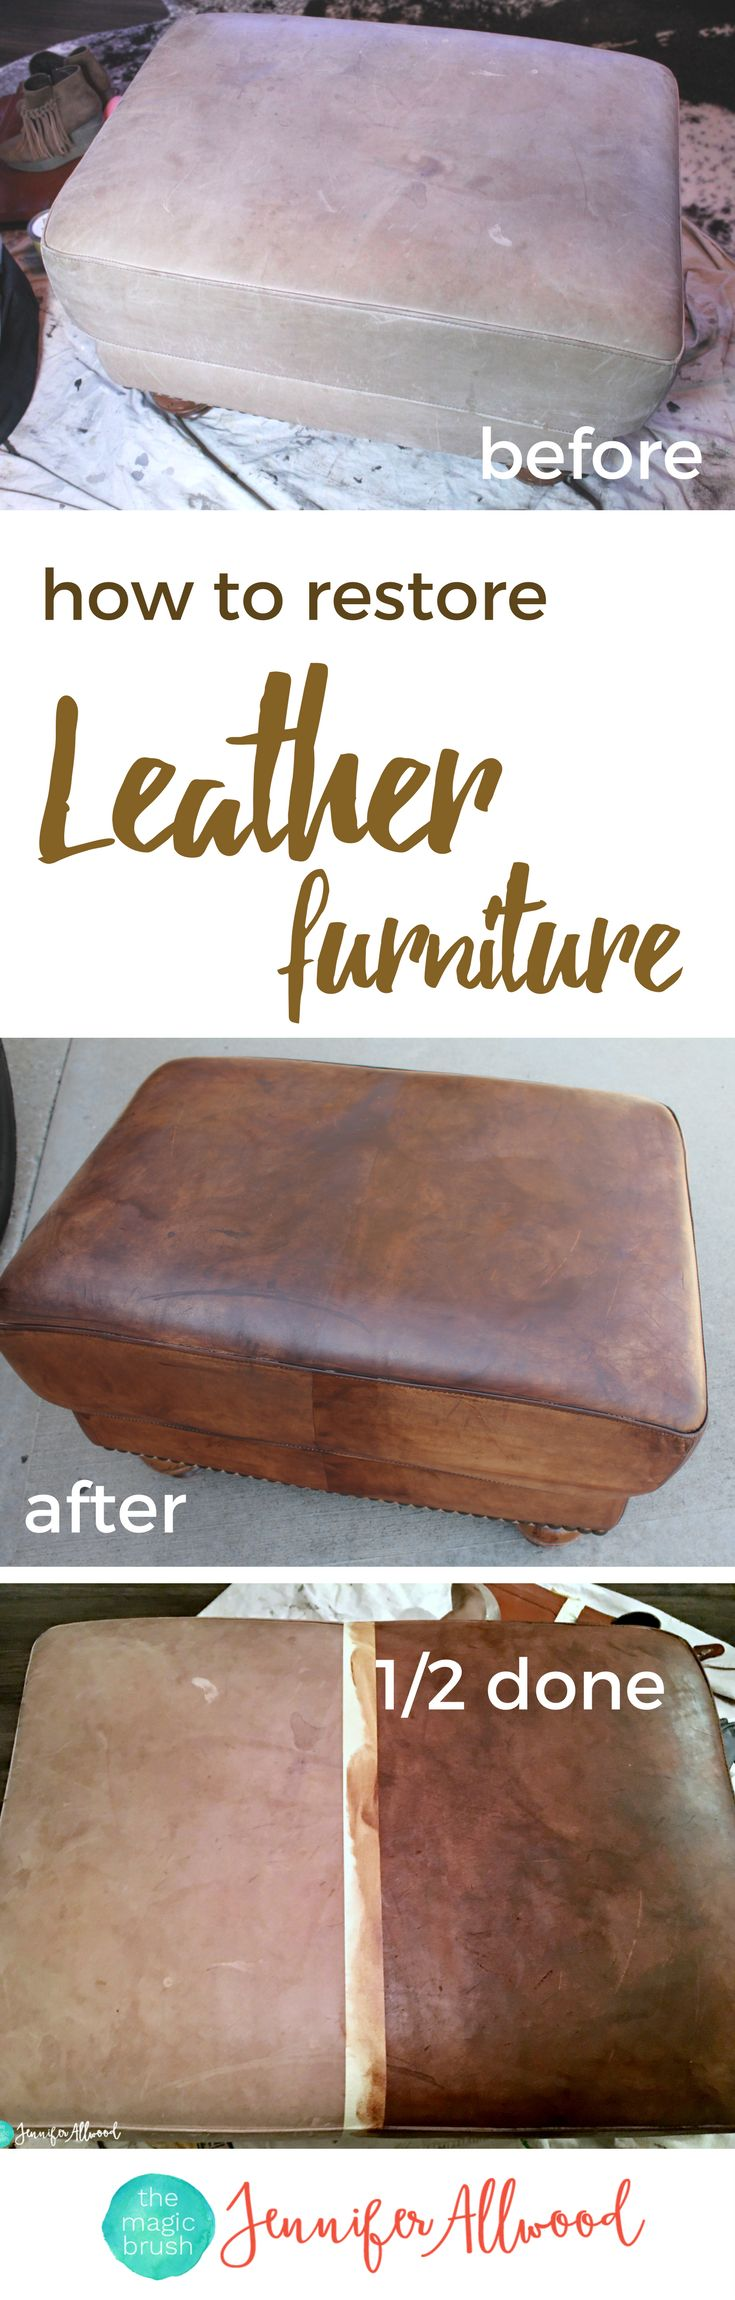 How To Restore Leather Furniture With ReLuv Leather Paint | Fix Worn Out  Leather Furniture |